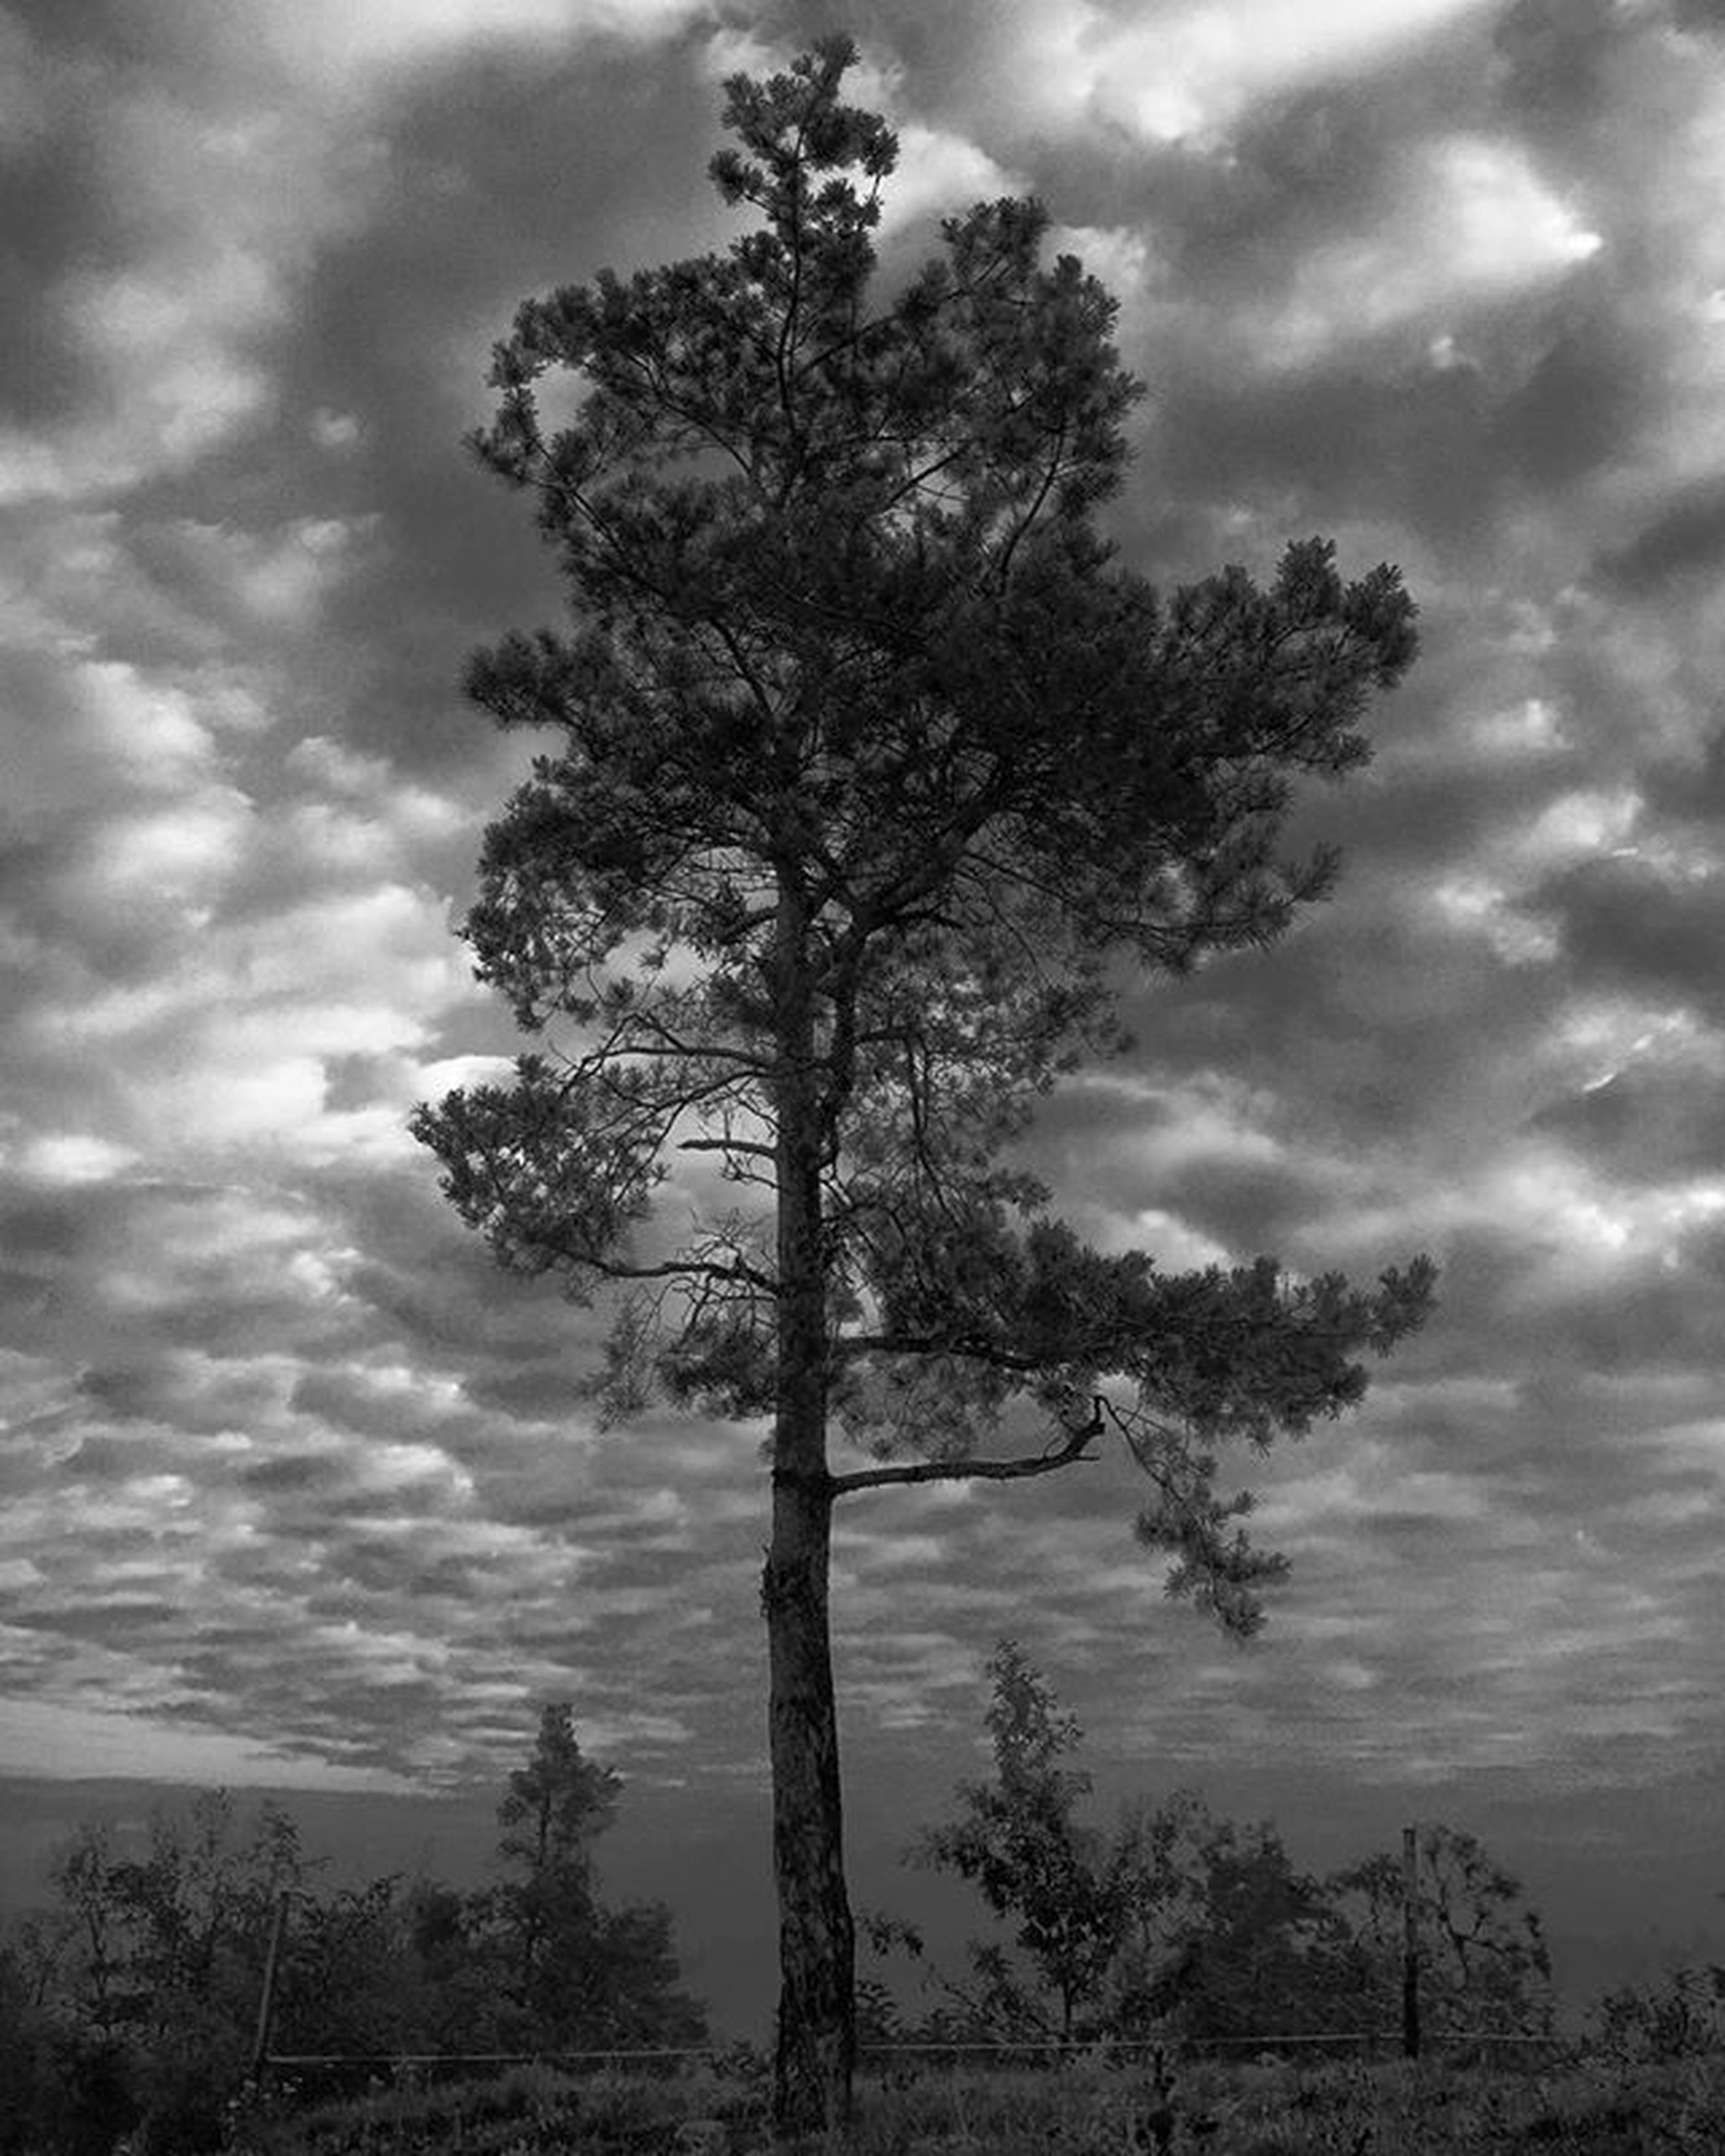 tree, sky, cloud - sky, cloudy, tranquility, silhouette, low angle view, tranquil scene, bare tree, nature, scenics, cloud, beauty in nature, weather, branch, overcast, tree trunk, growth, dusk, outdoors